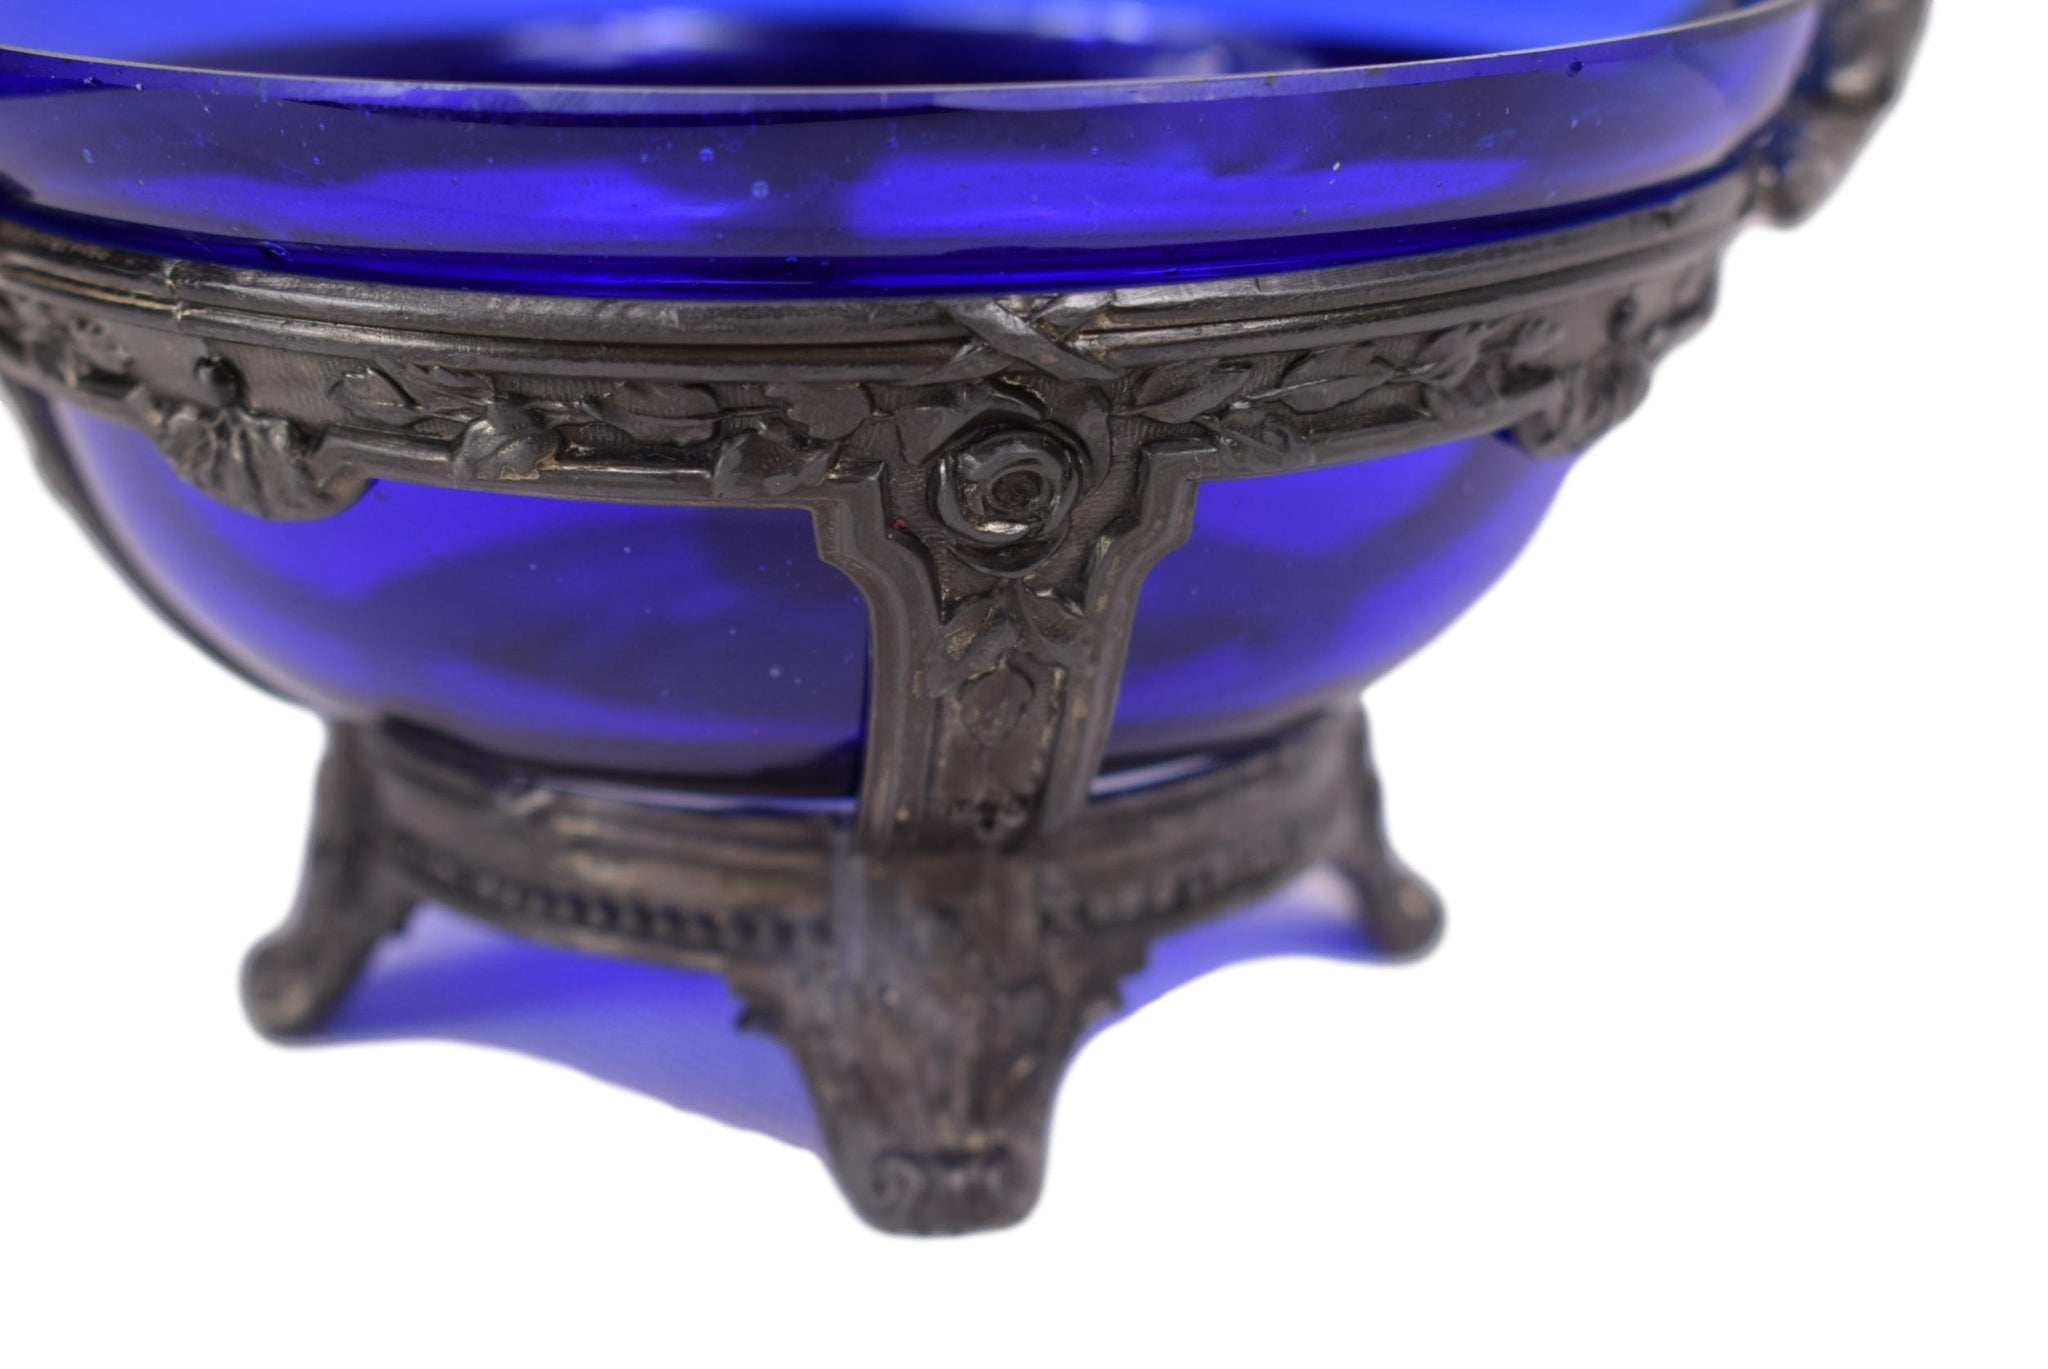 Cobalt Blue Trinket Bowl - Charmantiques